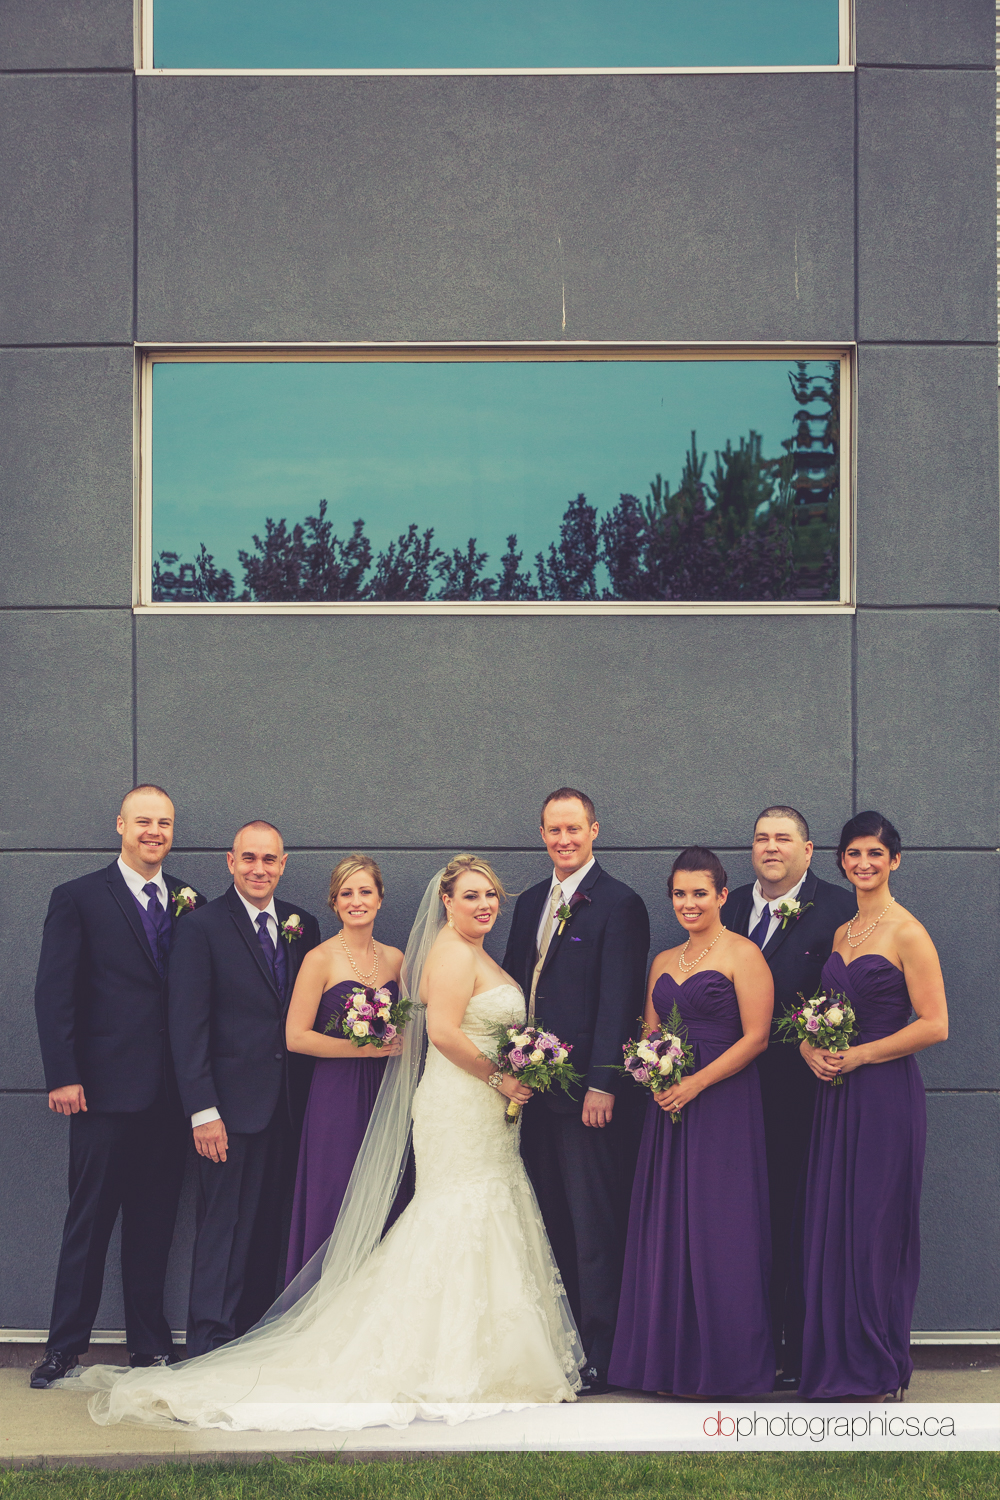 Lauren & Tim's Wedding - 20150829 - 0508.jpg